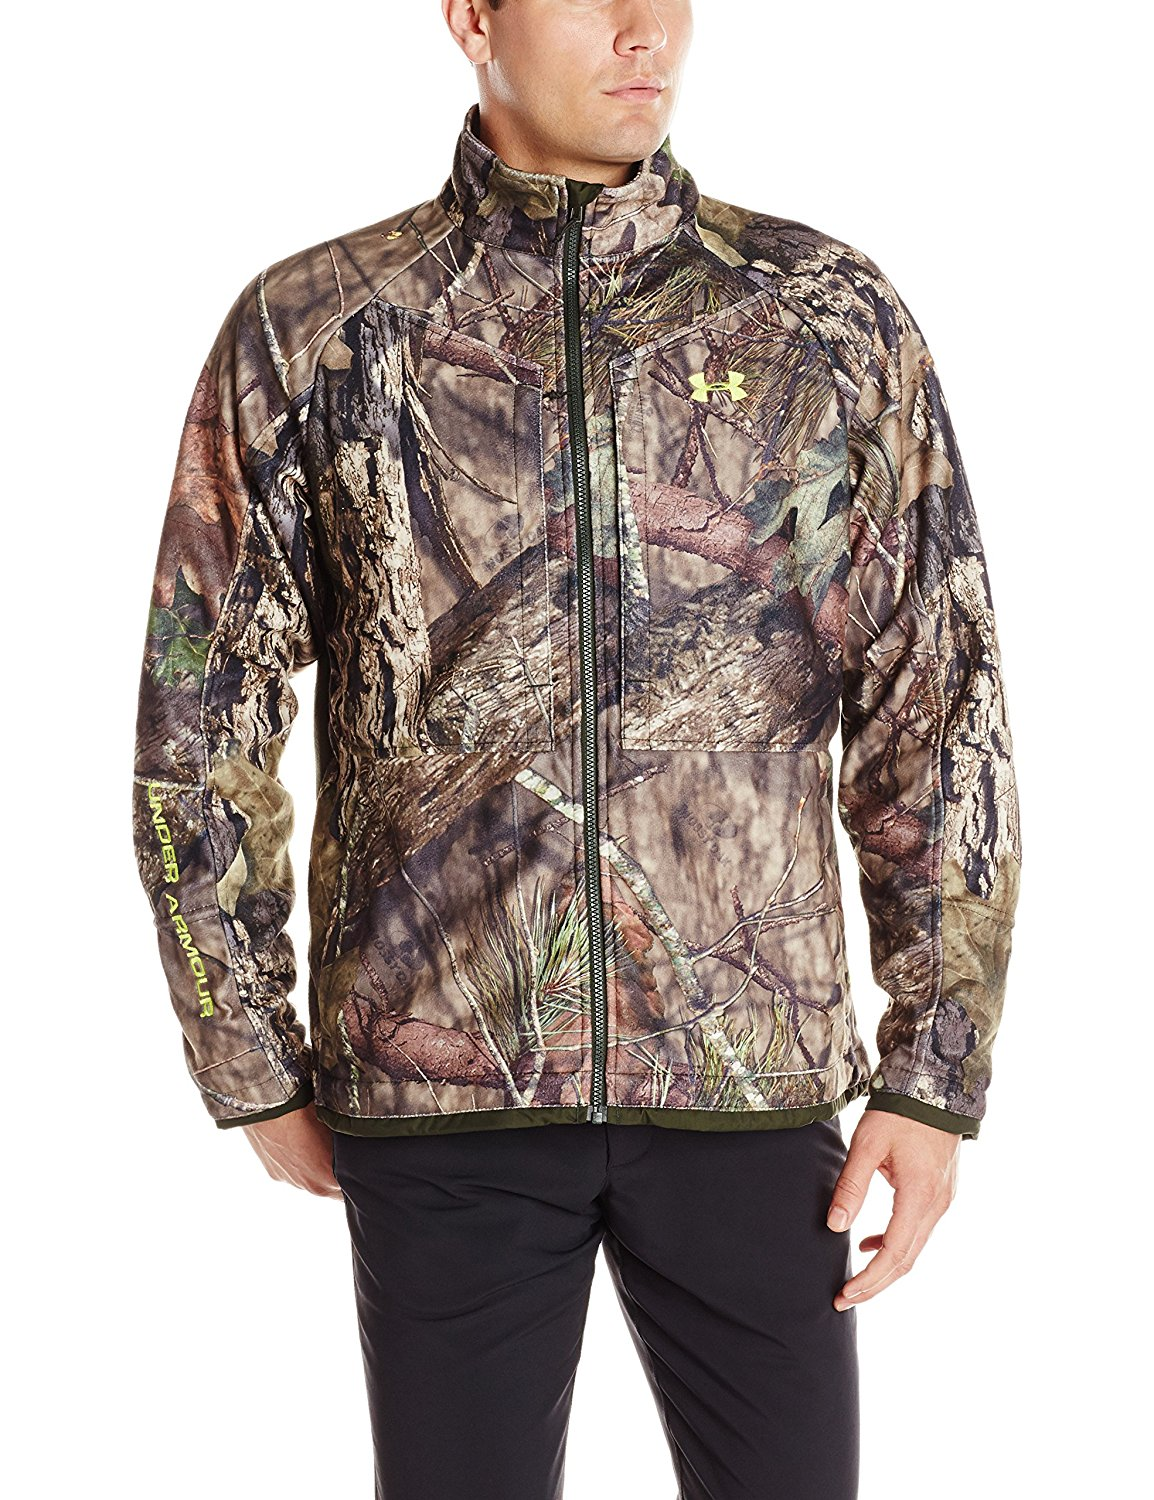 Under Armour Mens Coldgear Infrared Mossy Oak Camo Jacket Large by